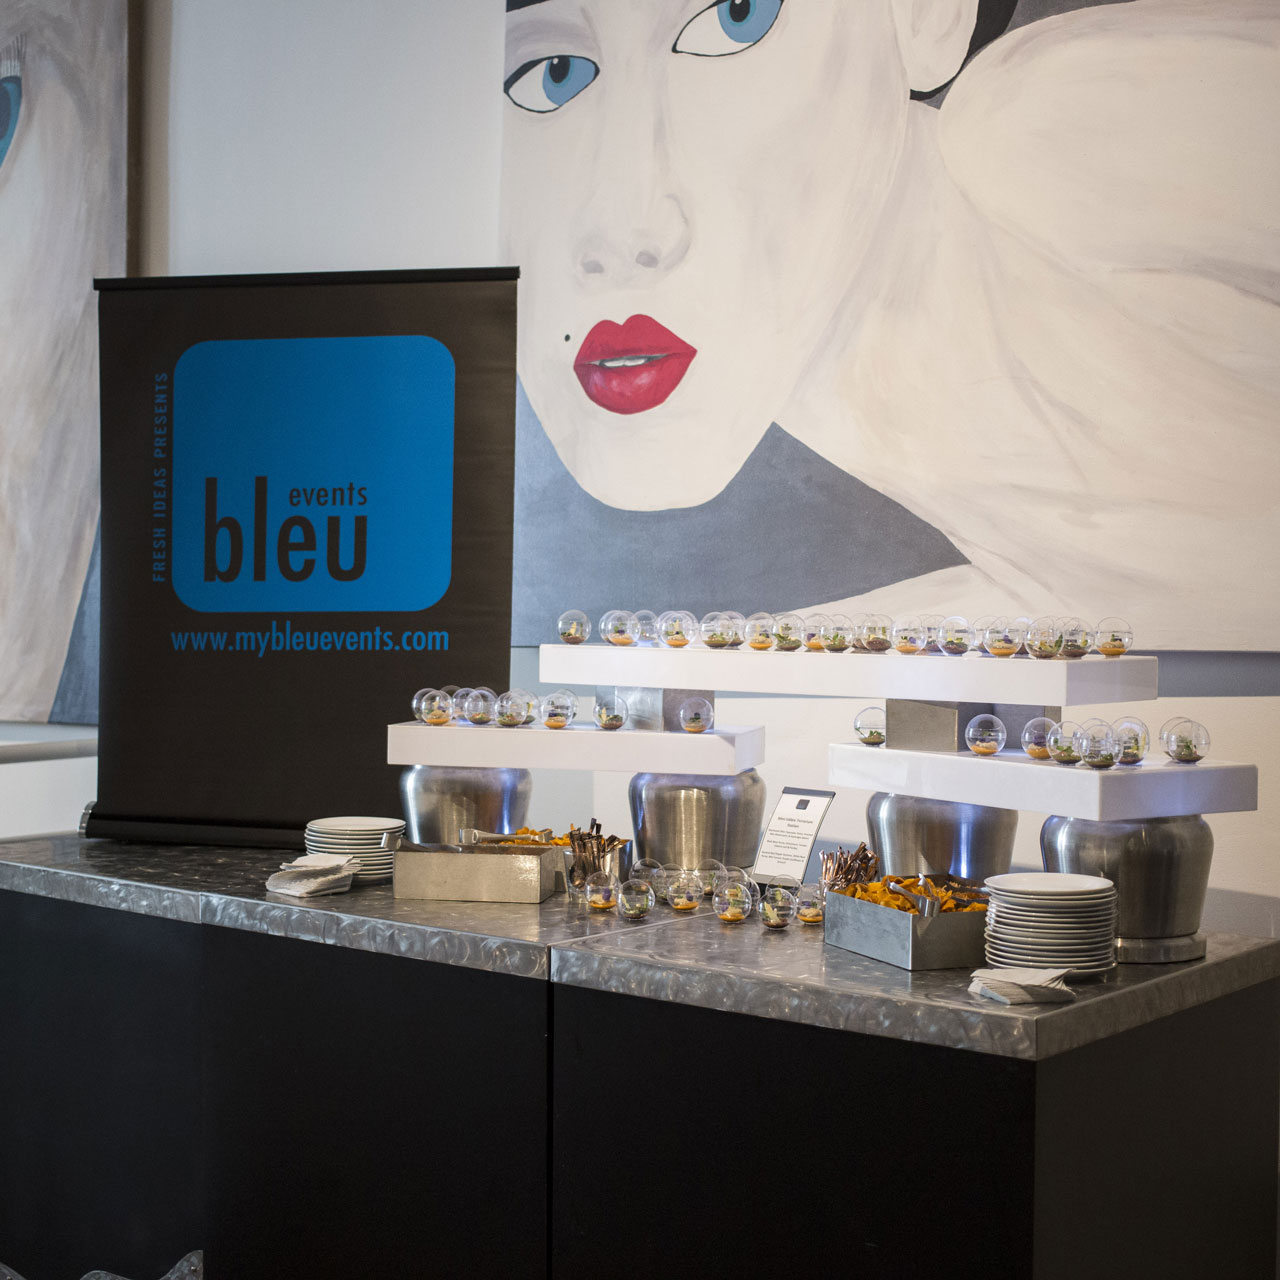 Display of event souvenirs at Randall Art Gallery for an event by Bleu Events